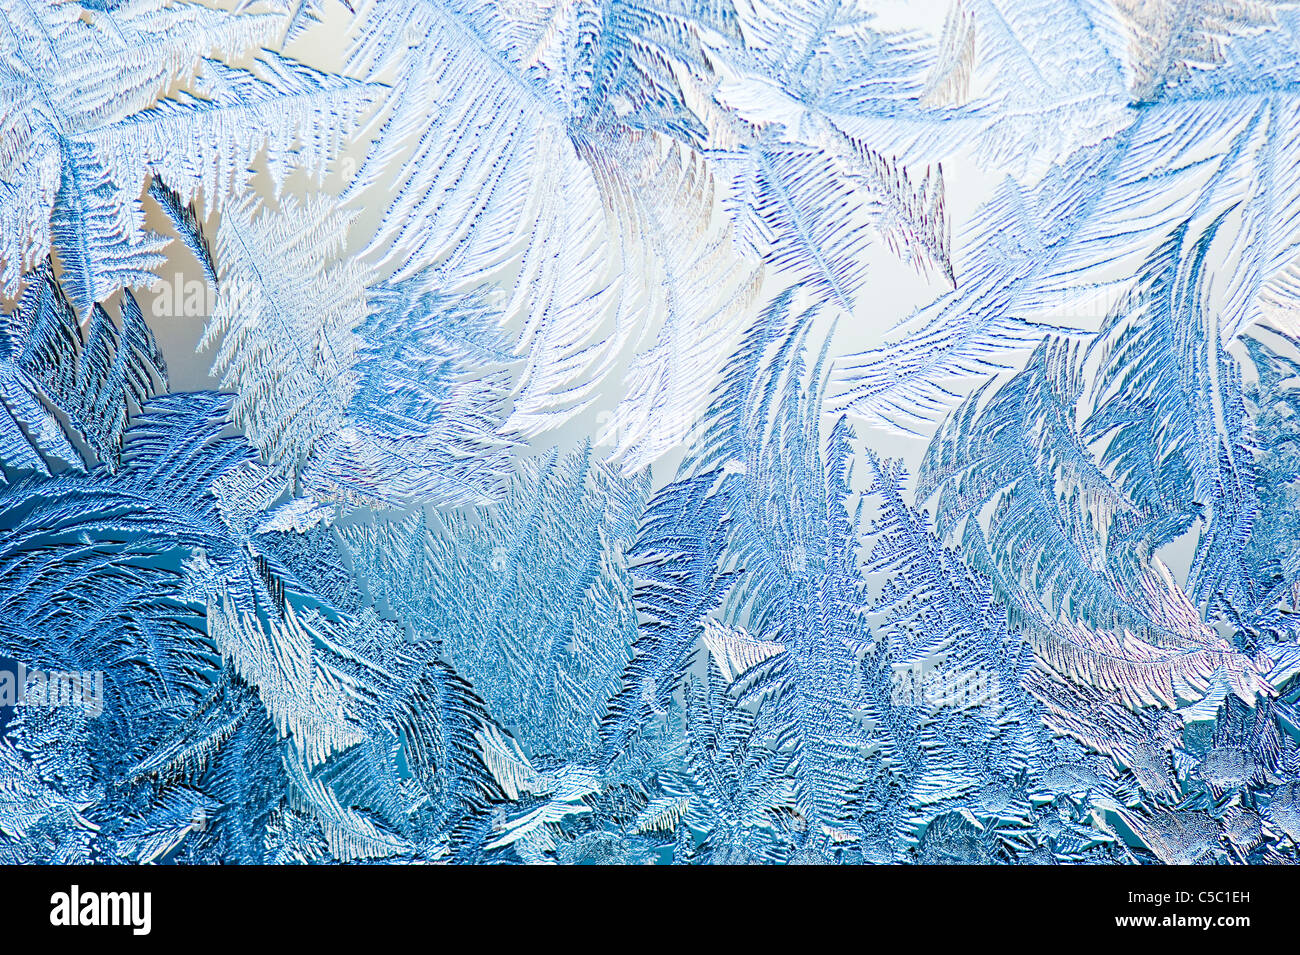 Background of ice crystals on window glass - Stock Image